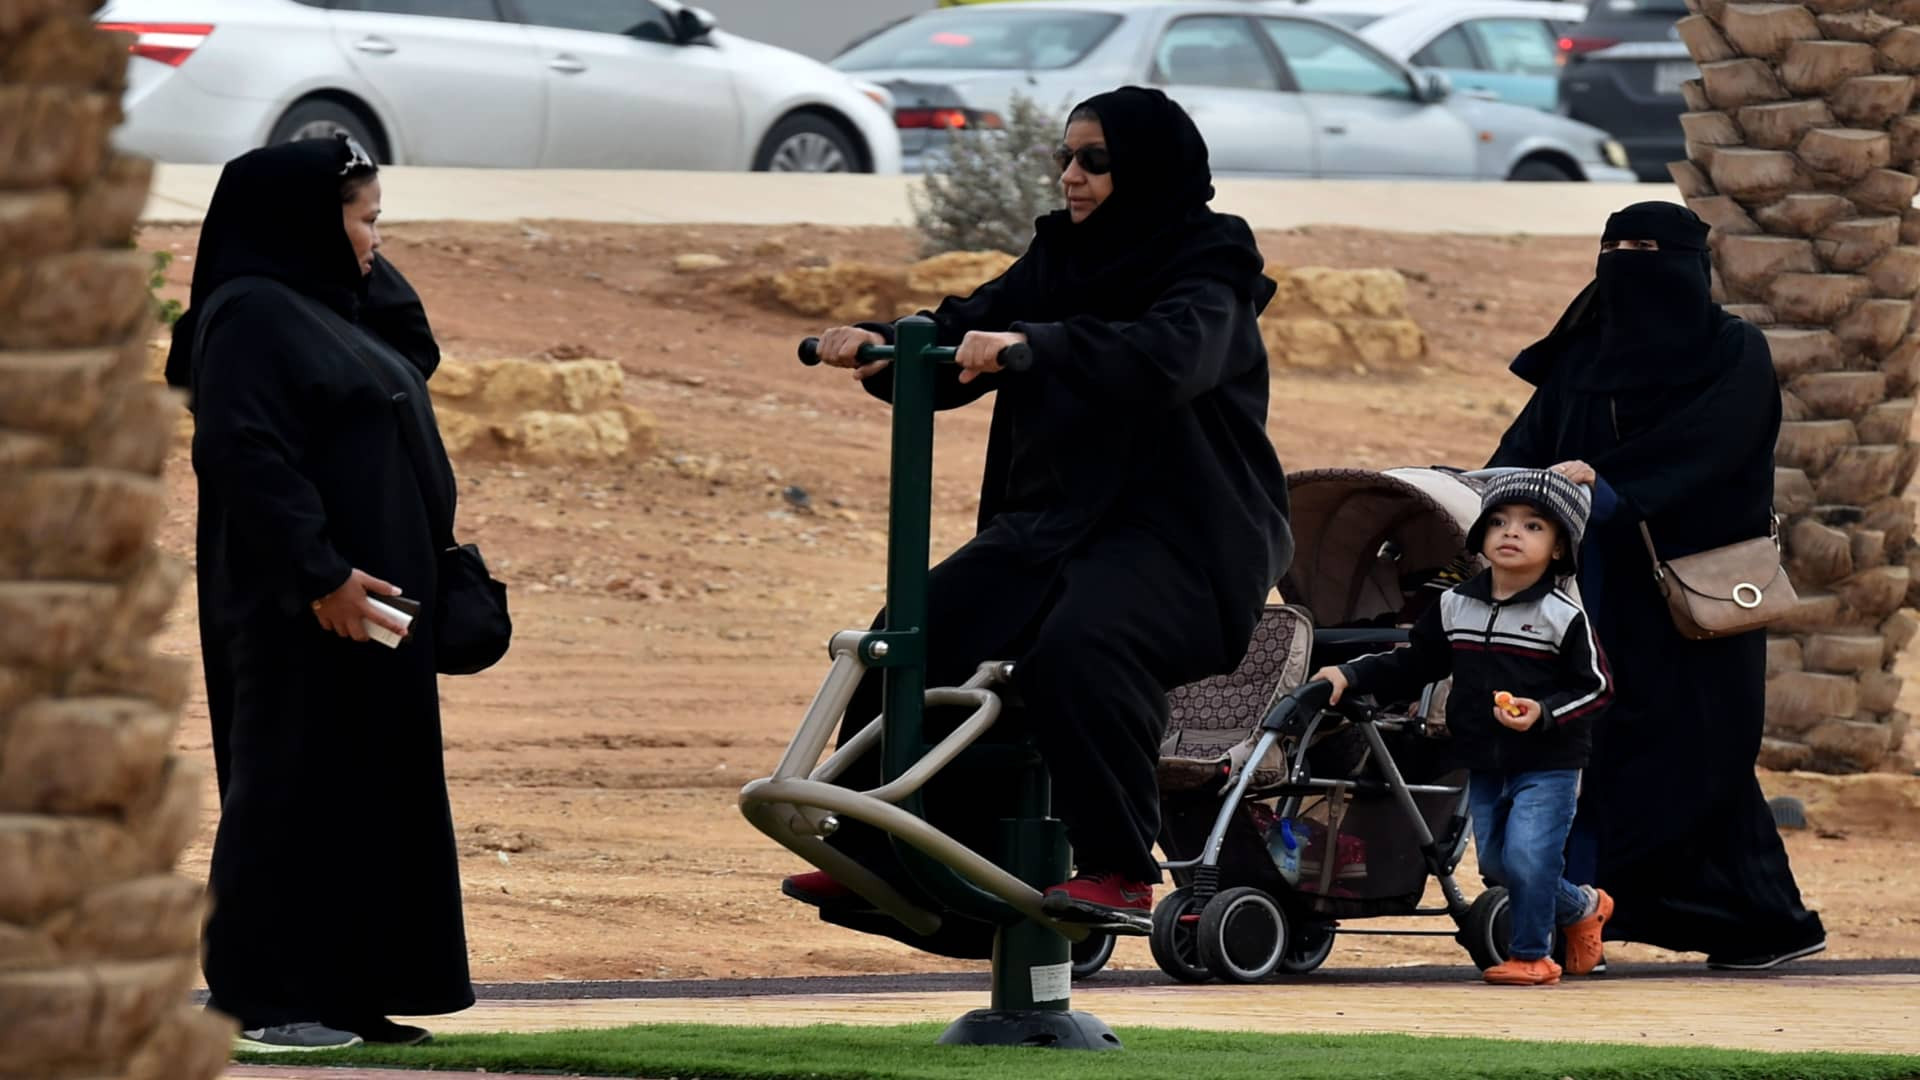 A Saudi woman plays in a playground pior to the 2018 Saudia Ad Diriyah E-Prix Formula E Championship in Riyadh, on December 15, 2018 in Riyadh. (Photo by FAYEZ NURELDINE / AFP)(Photo credit should read FAYEZ NURELDINE/AFP/Getty Images)